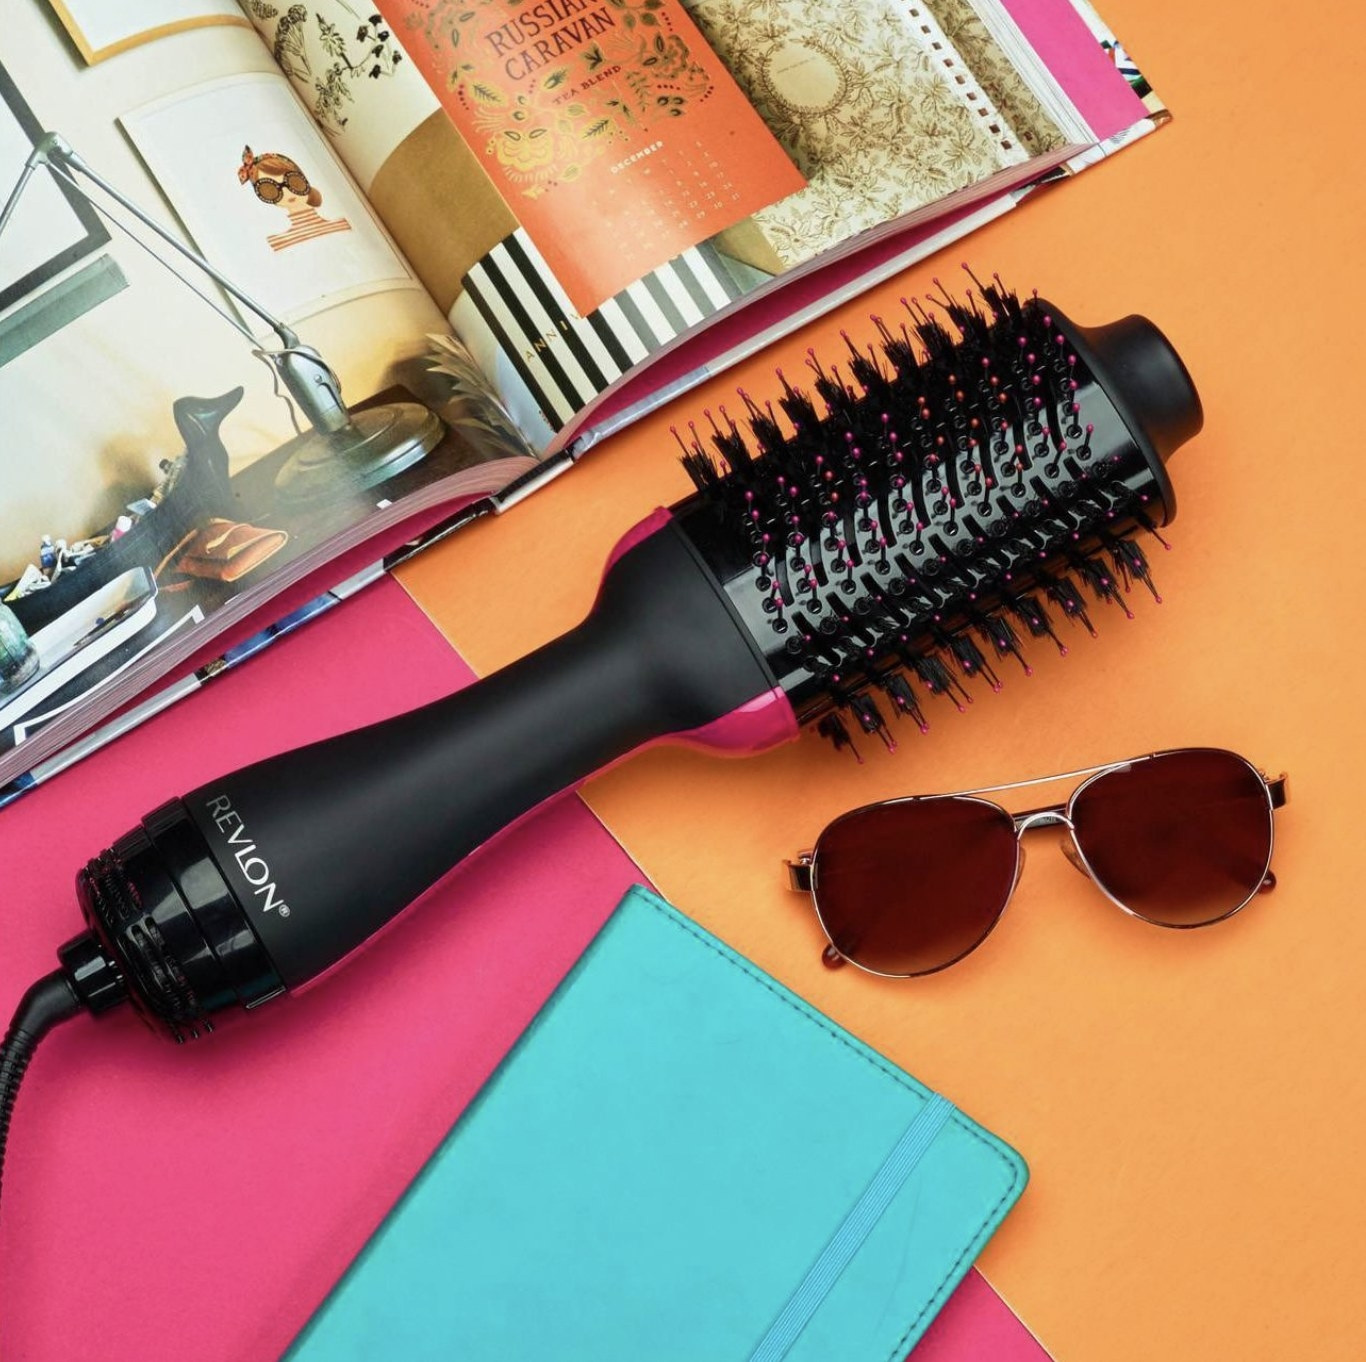 A two-in-one heat-styling product